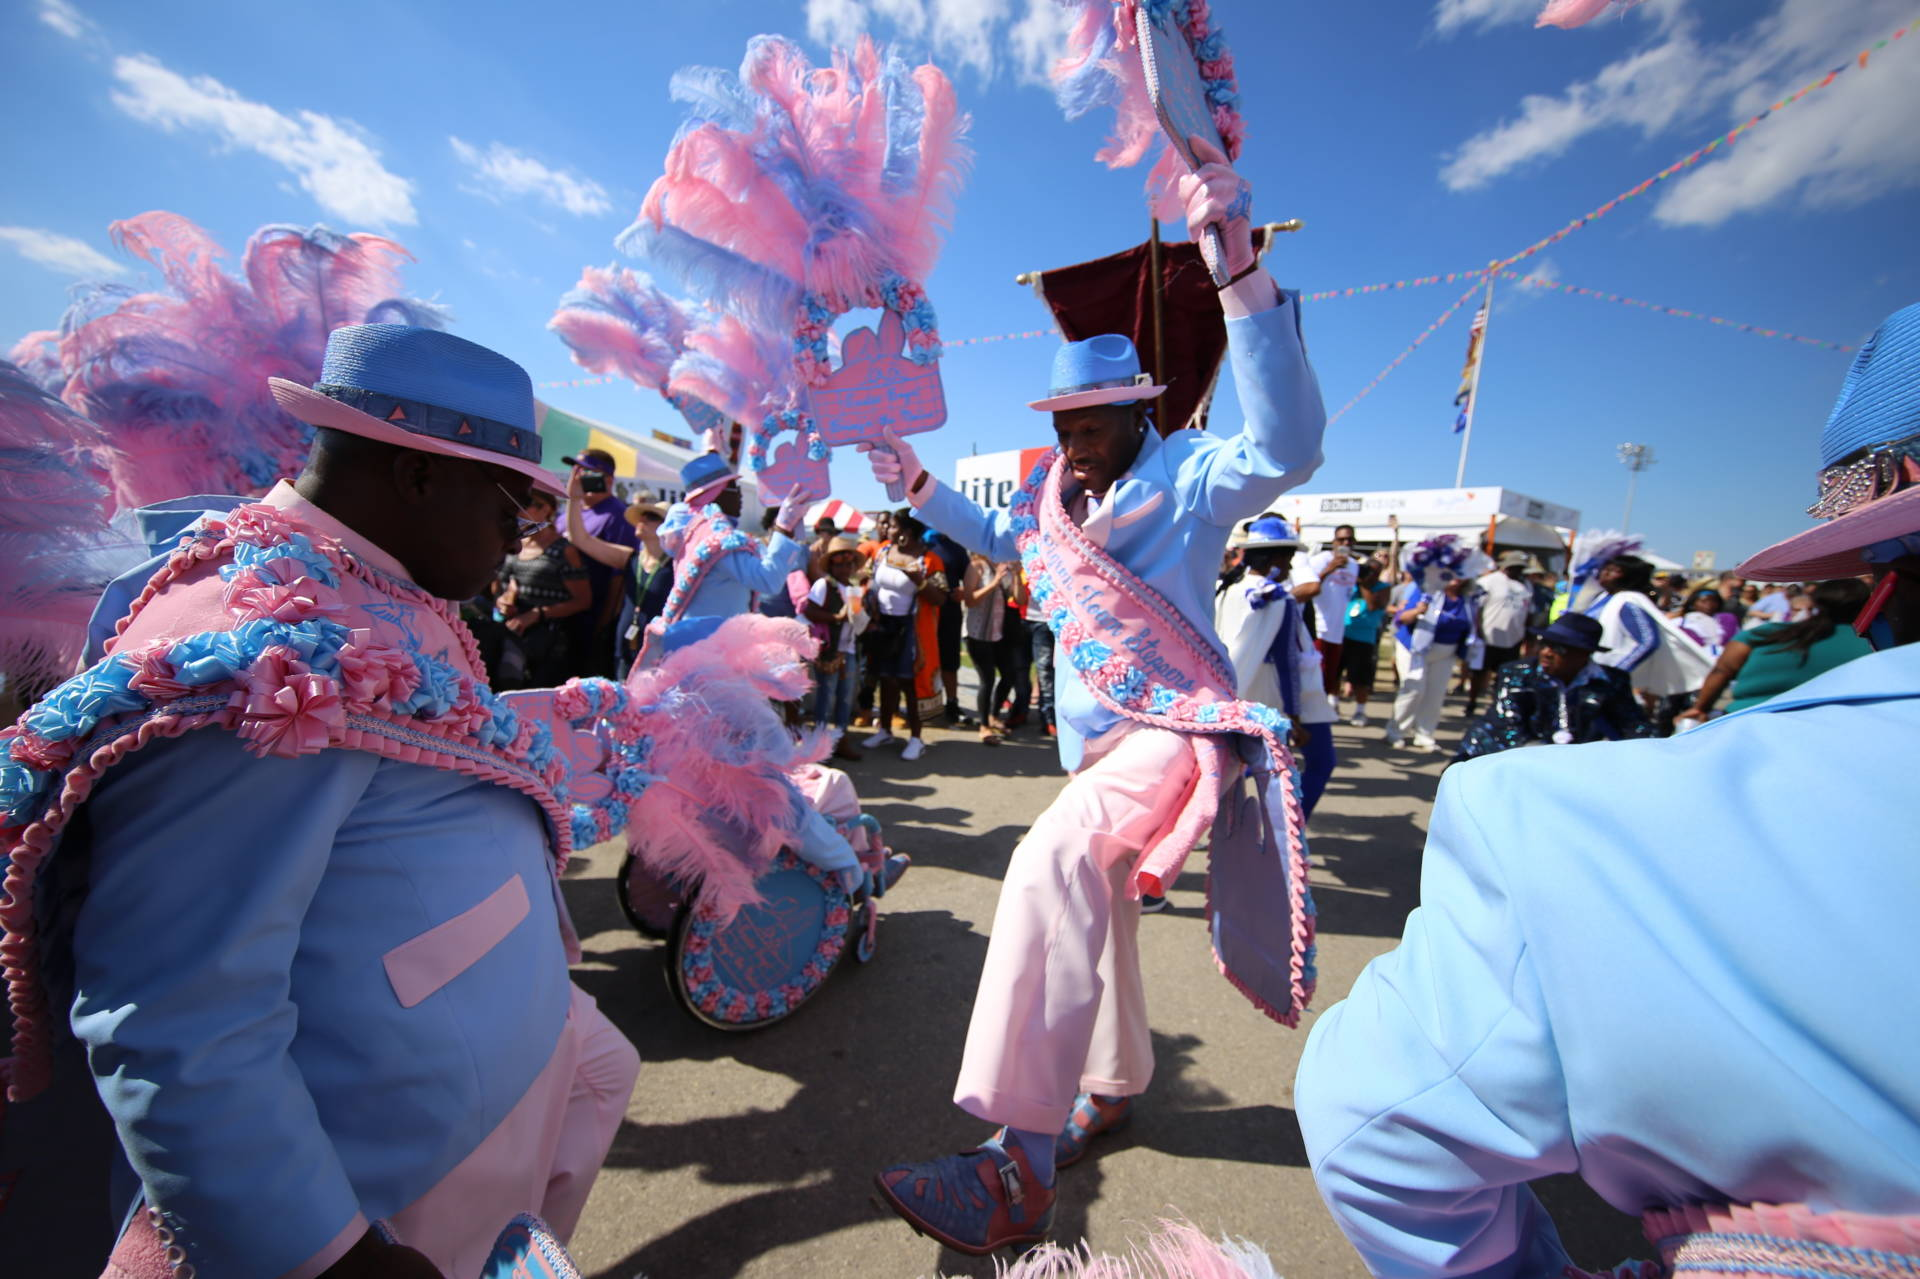 A second-line parade at the 2017 New Orleans Jazz and Heritage Festival, one of many sights underlining the event's place-based identity. Photo: New Orleans Jazz and Heritage Festival